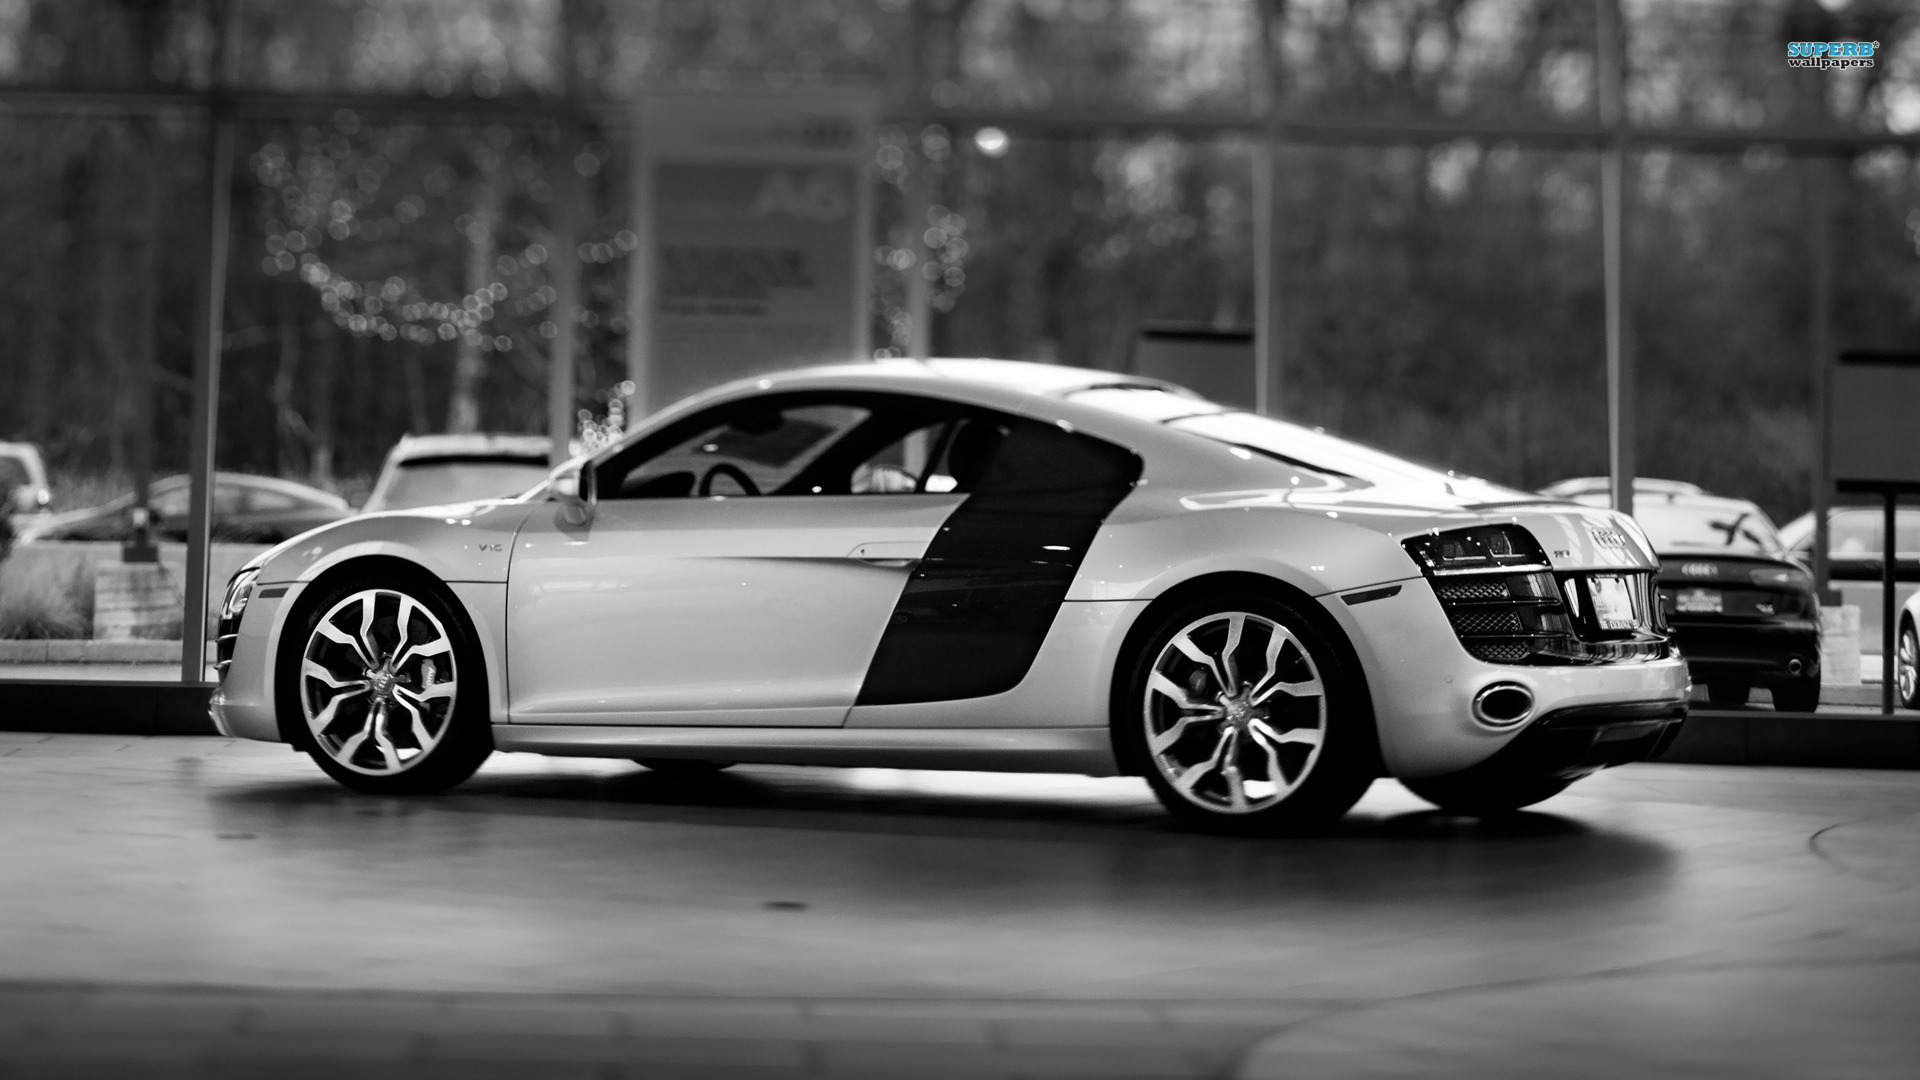 Audi R8 Black Red Image 7